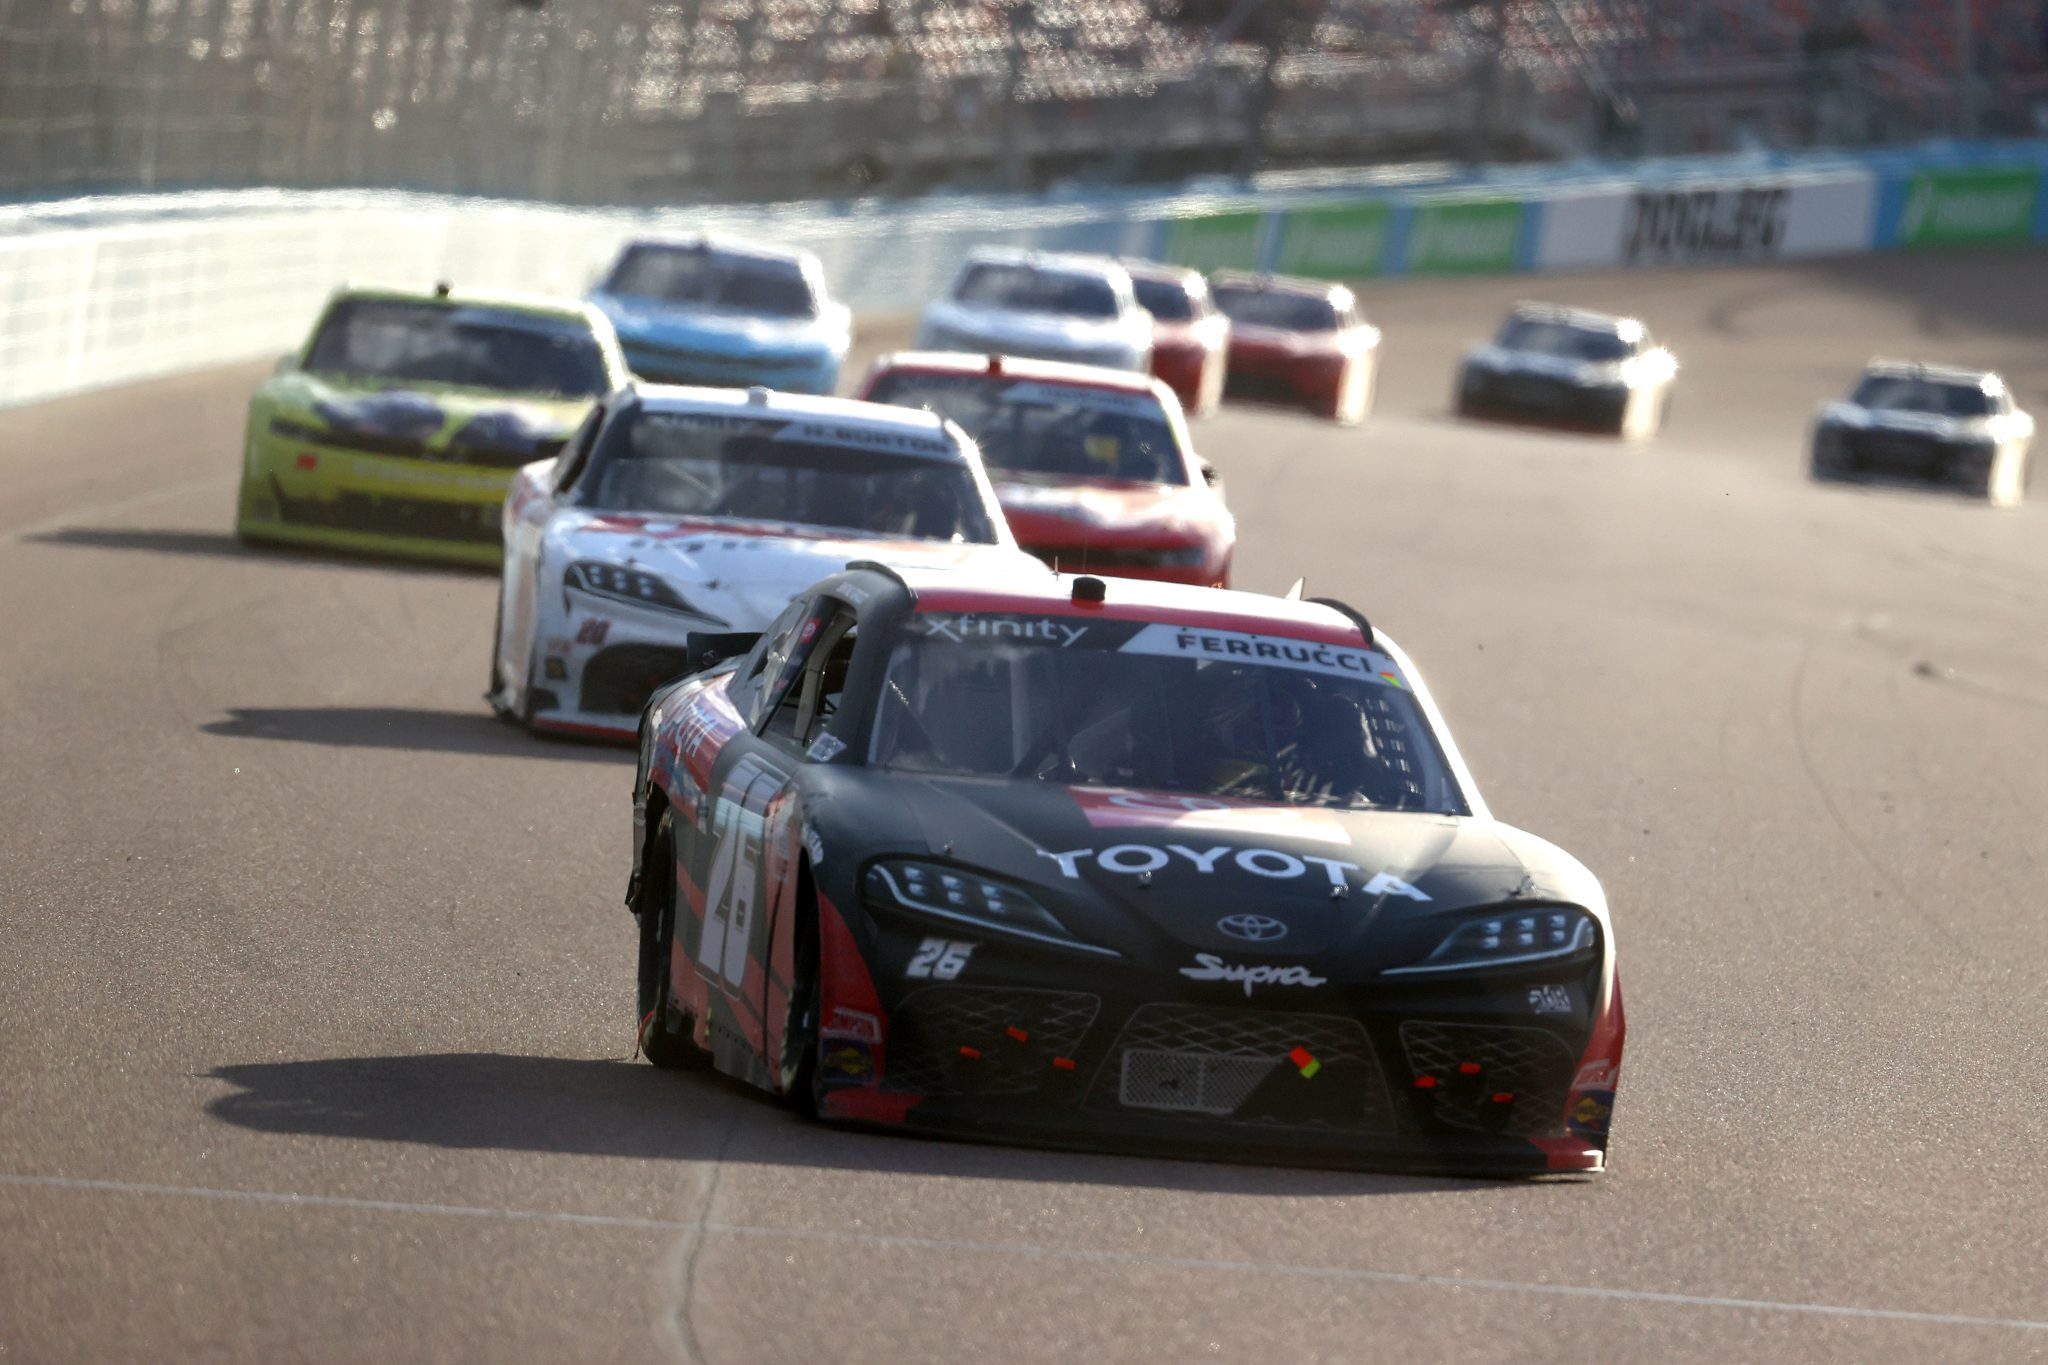 AVONDALE, ARIZONA - MARCH 13: Santino Ferrucci, driver of the #26 Toyota Racing Toyota, drives during the NASCAR Xfinity Series Call 811 Before You Dig 200 presented by Arizona 811 at Phoenix Raceway on March 13, 2021 in Avondale, Arizona. (Photo by Abbie Parr/Getty Images) | Getty Images